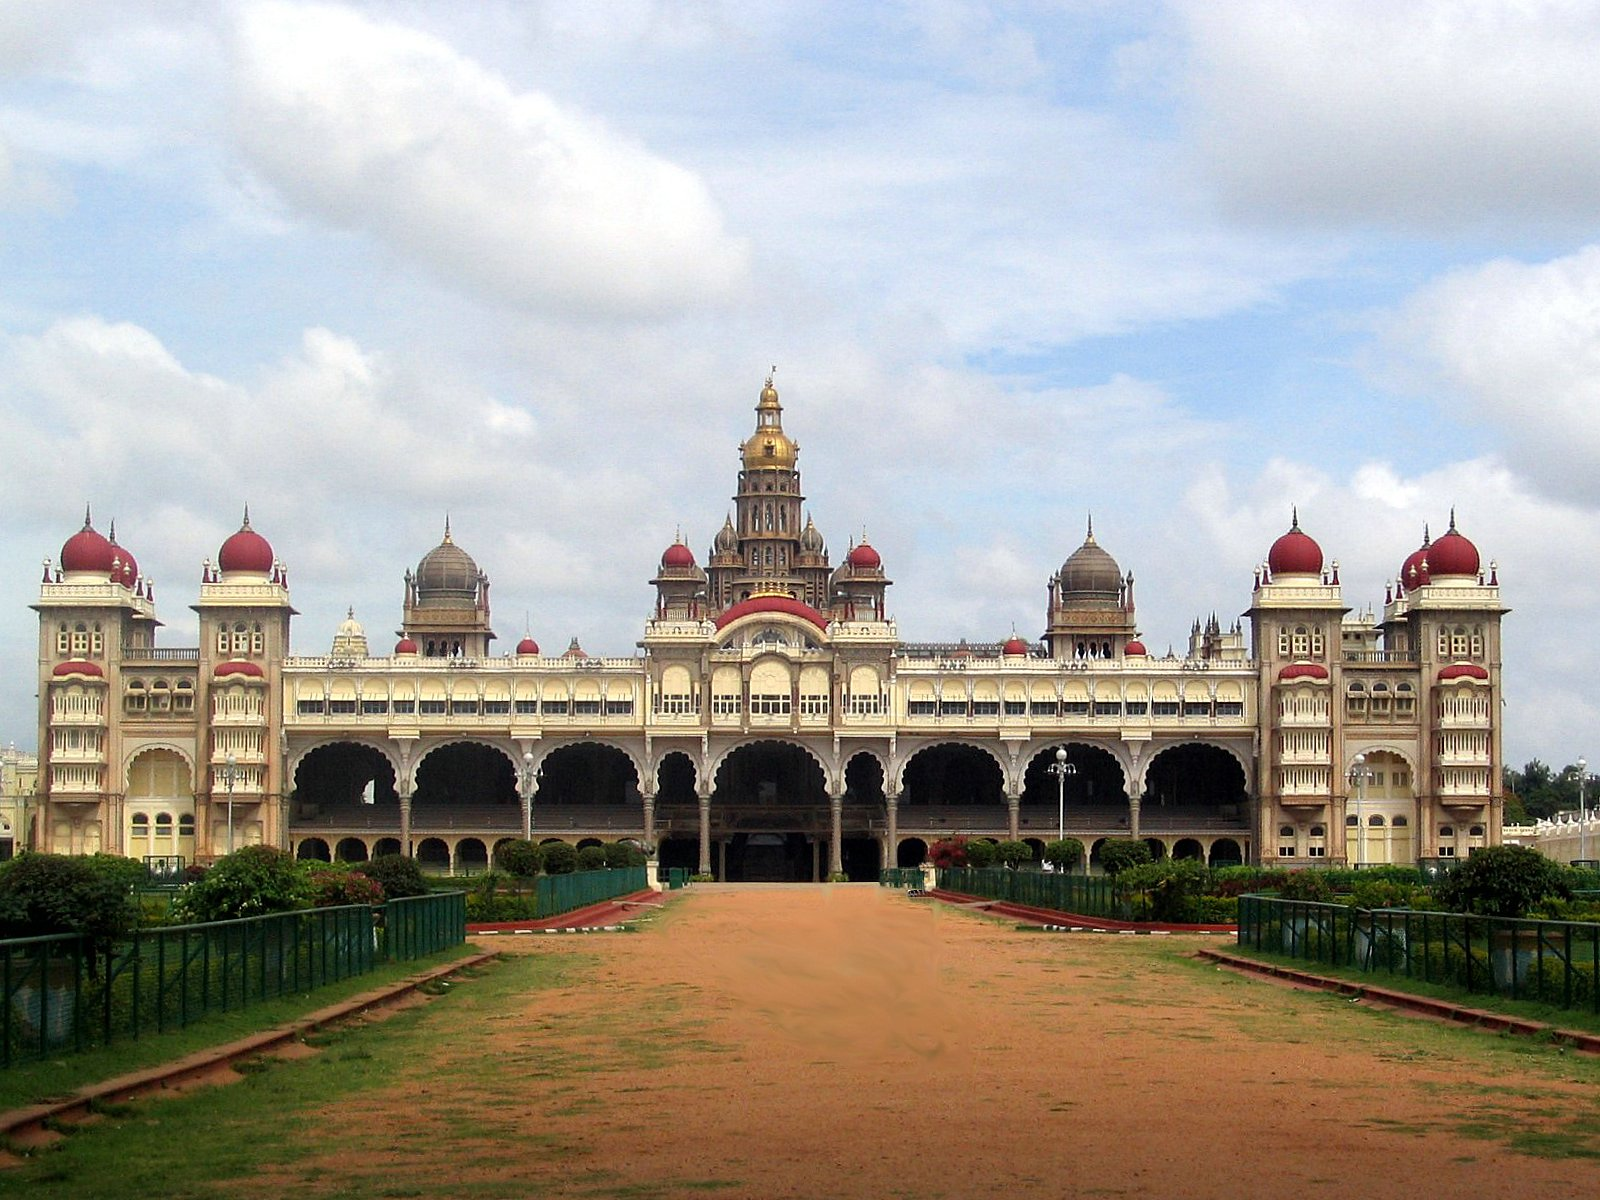 http://upload.wikimedia.org/wikipedia/commons/1/17/Mysore_Palace_Front_view.jpg